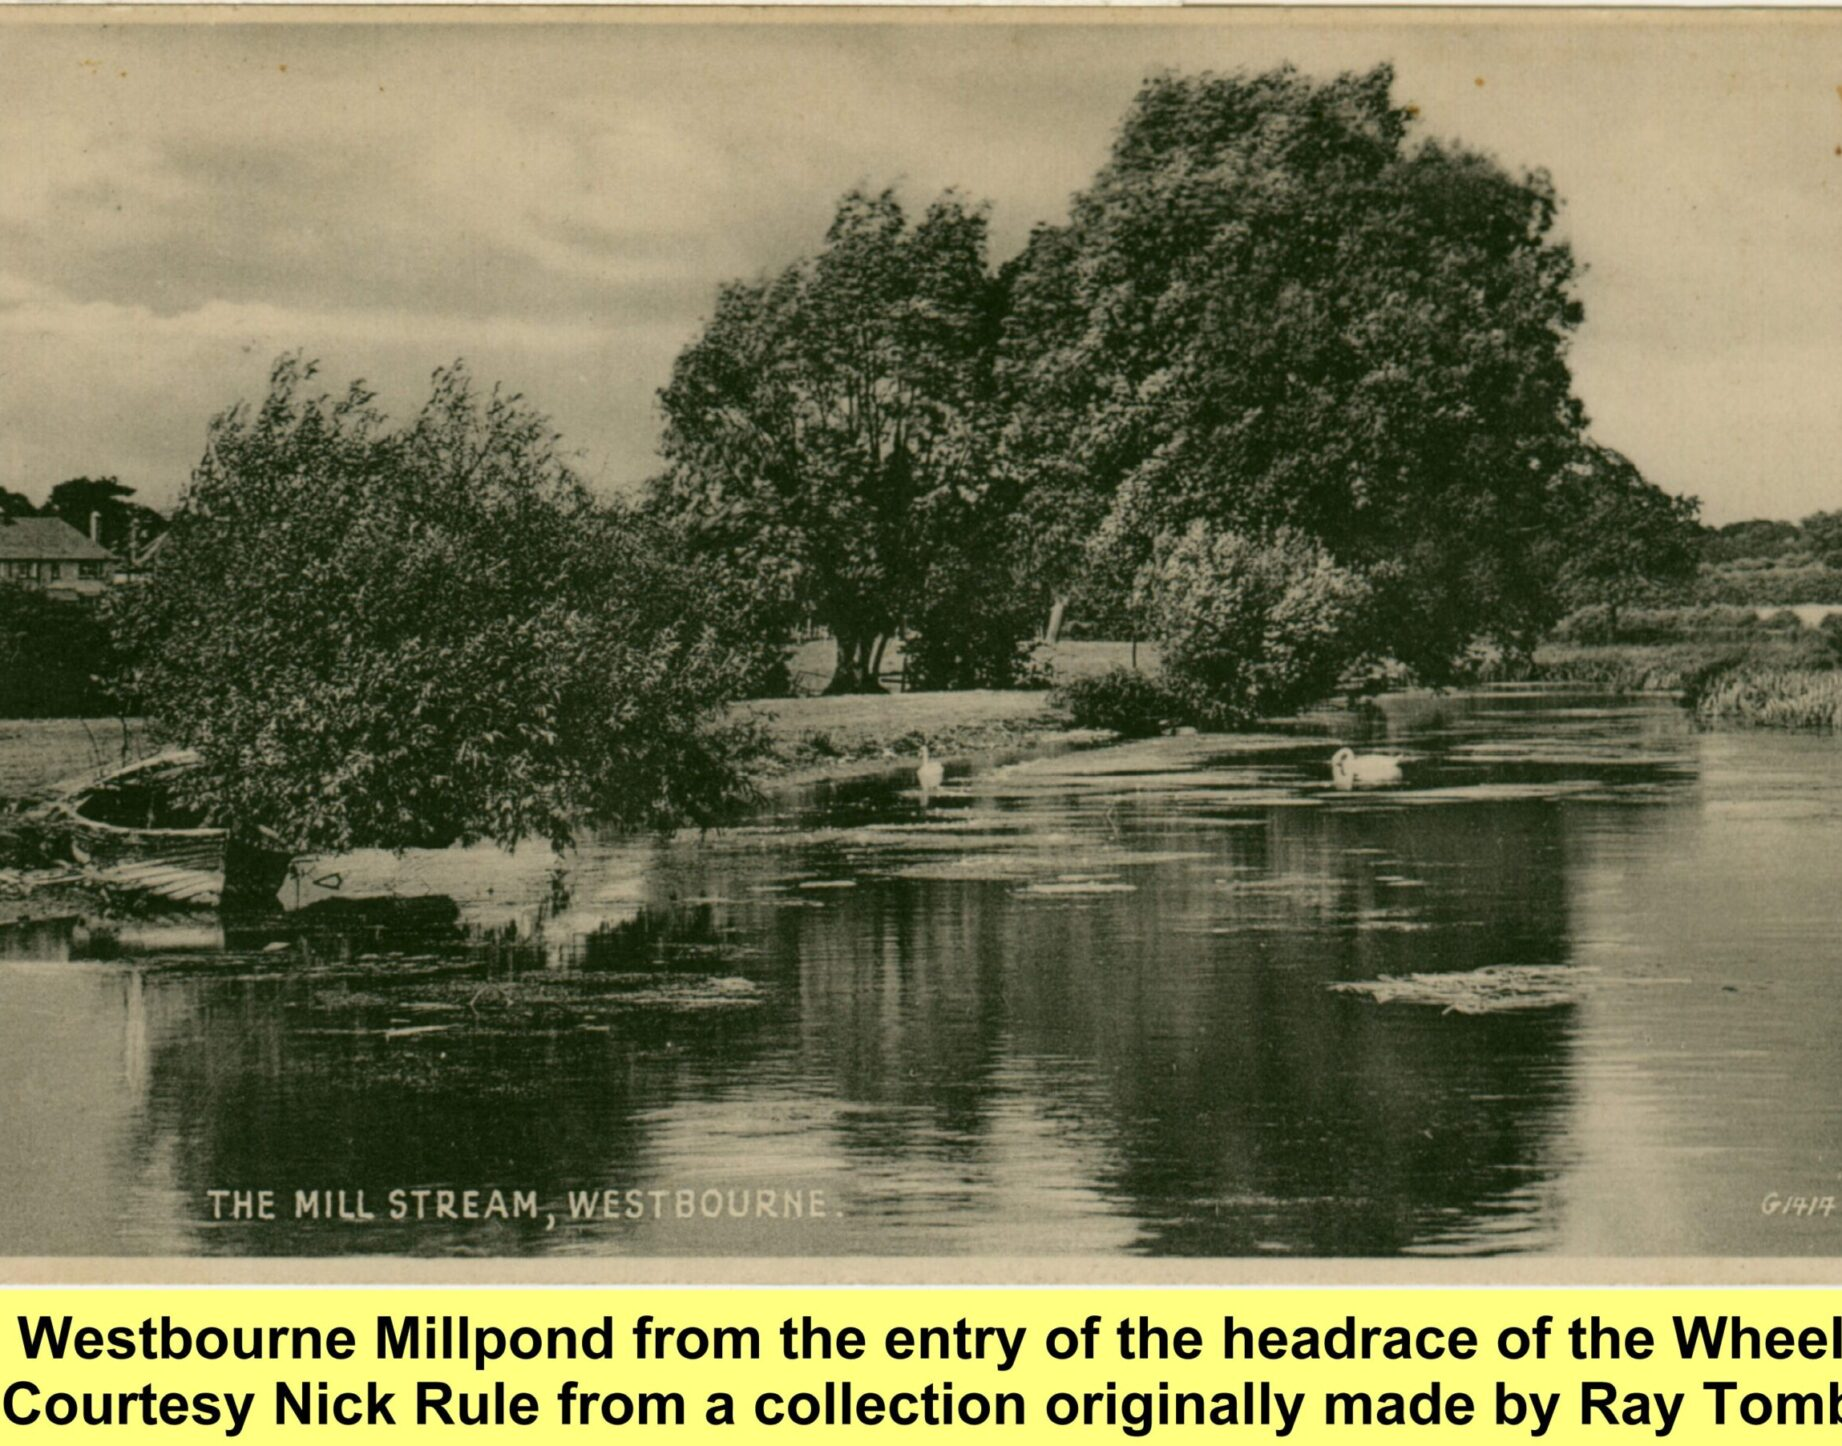 WESTBOURNE HISTORY PHOTO, WESTBOURNE MILLPOND